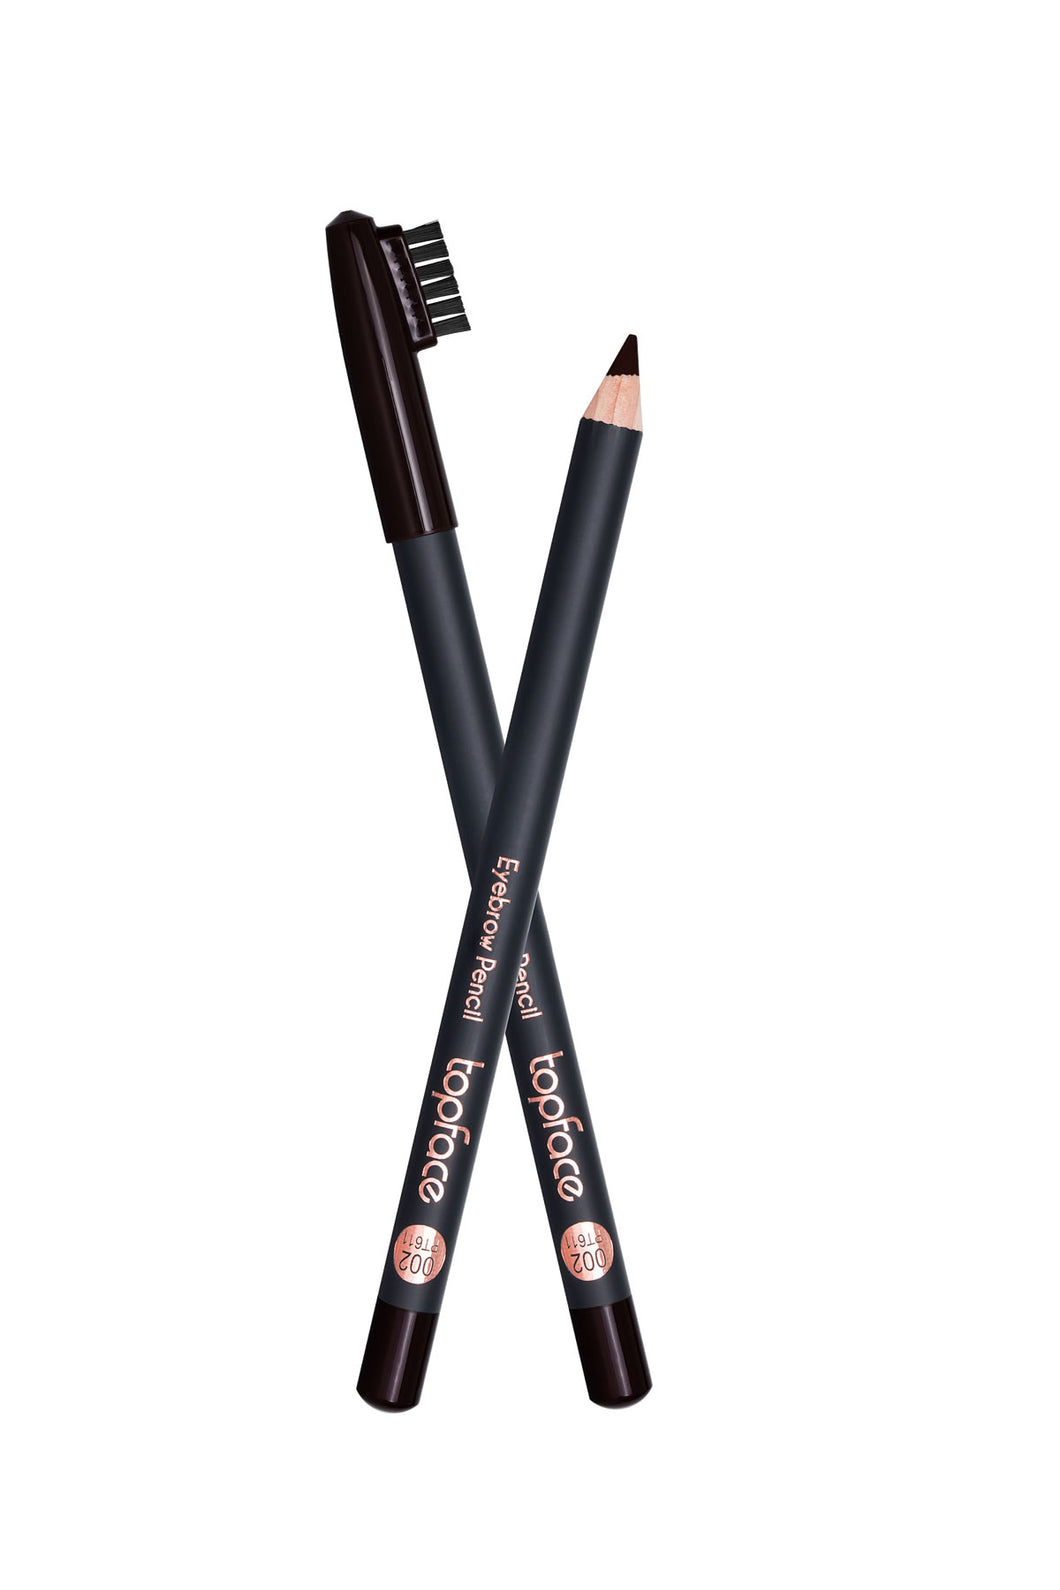 Topface - Eyebrow Pencil - 004